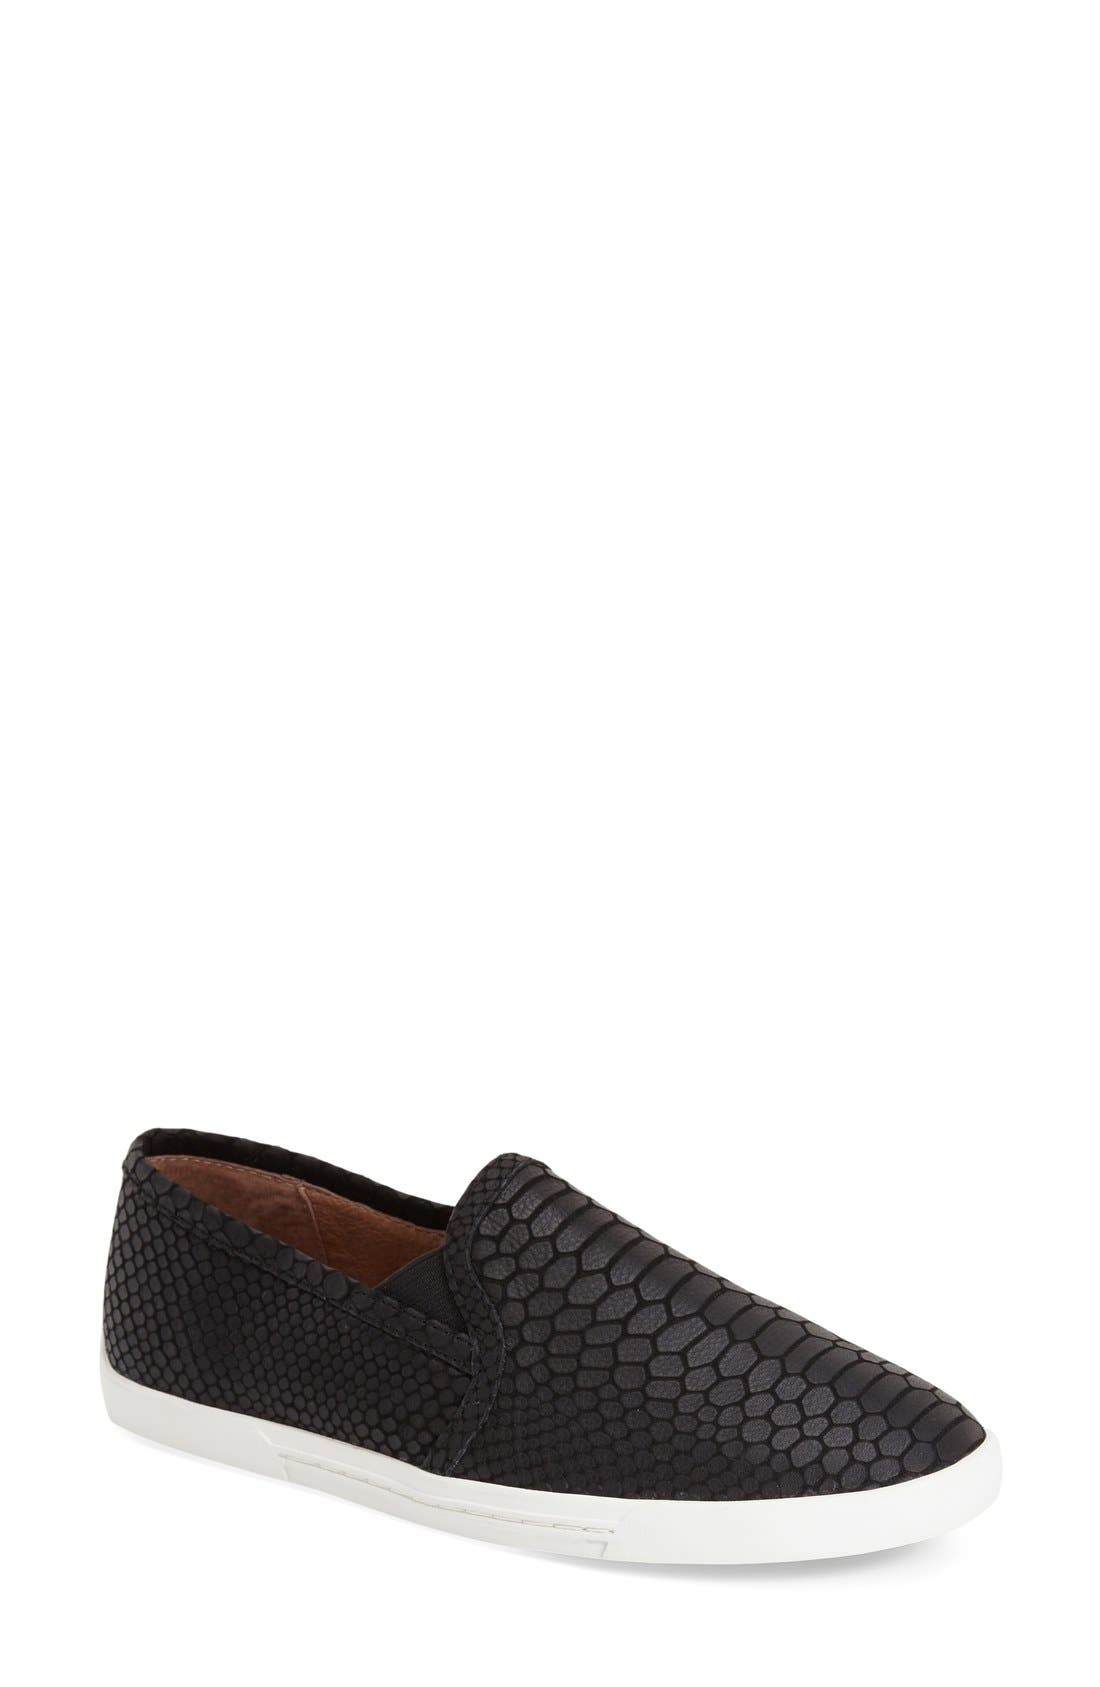 Image of Joie Kidmore Leather Snake Embossed Slip-On Sneaker